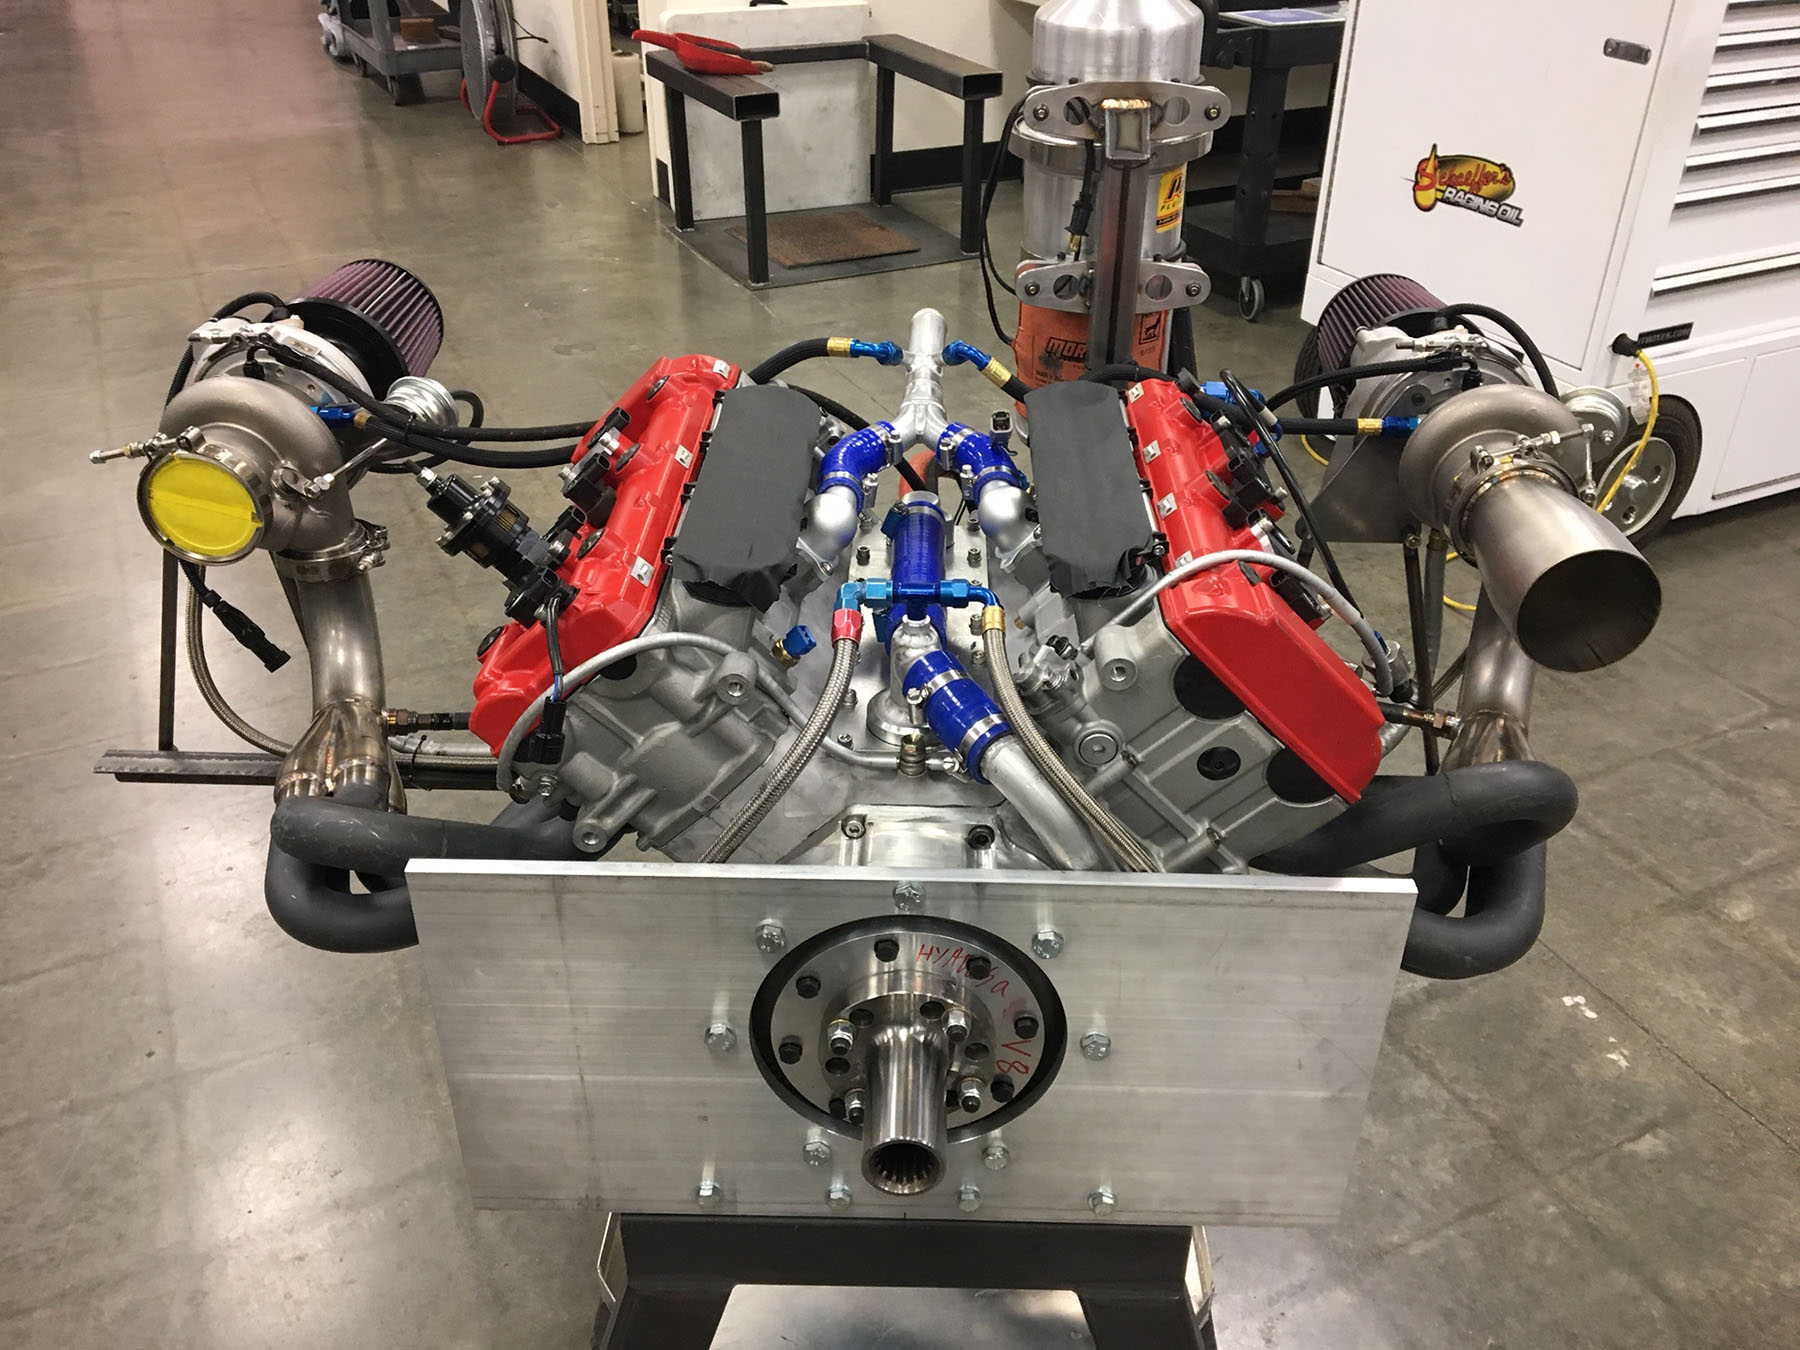 hight resolution of last year we wrote about jfc racing purchasing hartley s 3 0 l bolt v8 designs and developed their own version called the jfc v8